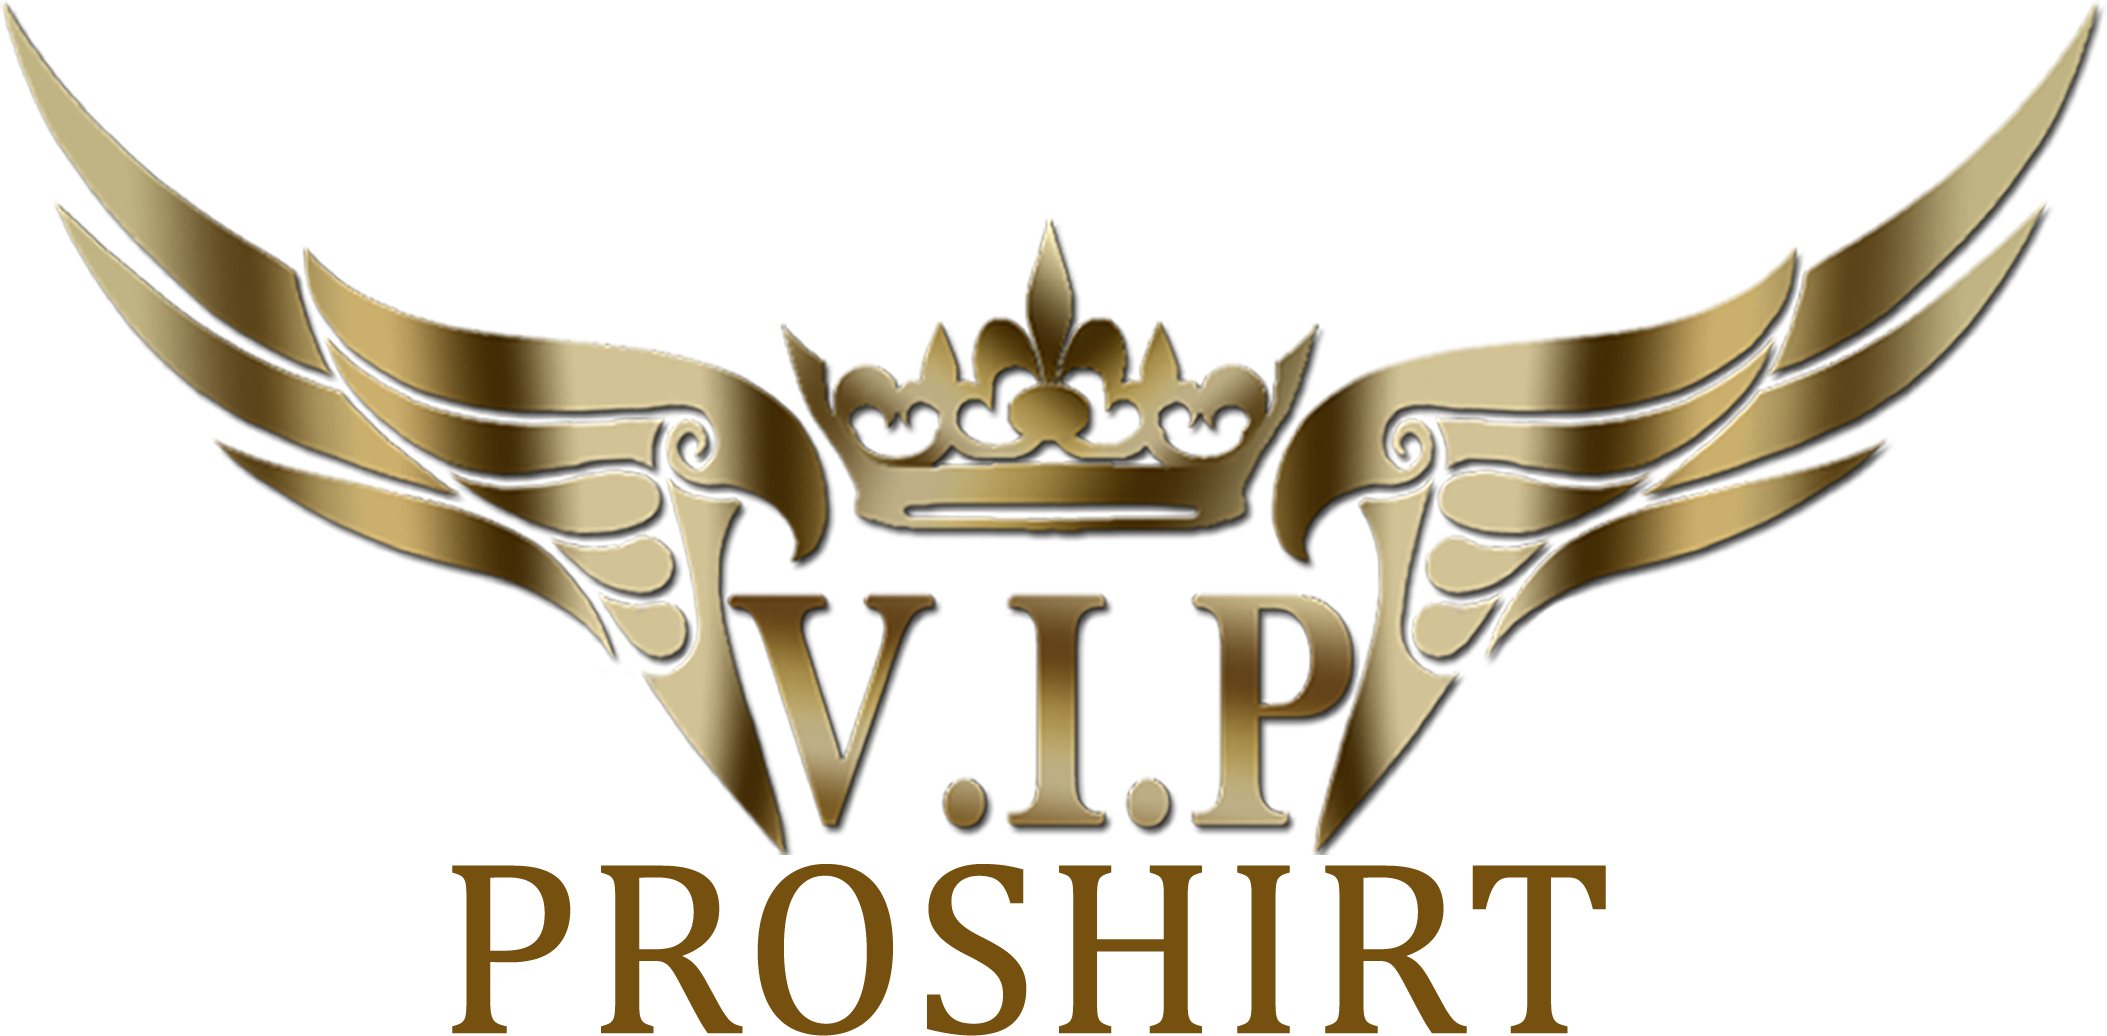 Vipproshirt – The best loving fashion – Loving t-shirt, hoodie, tank update for man and woman